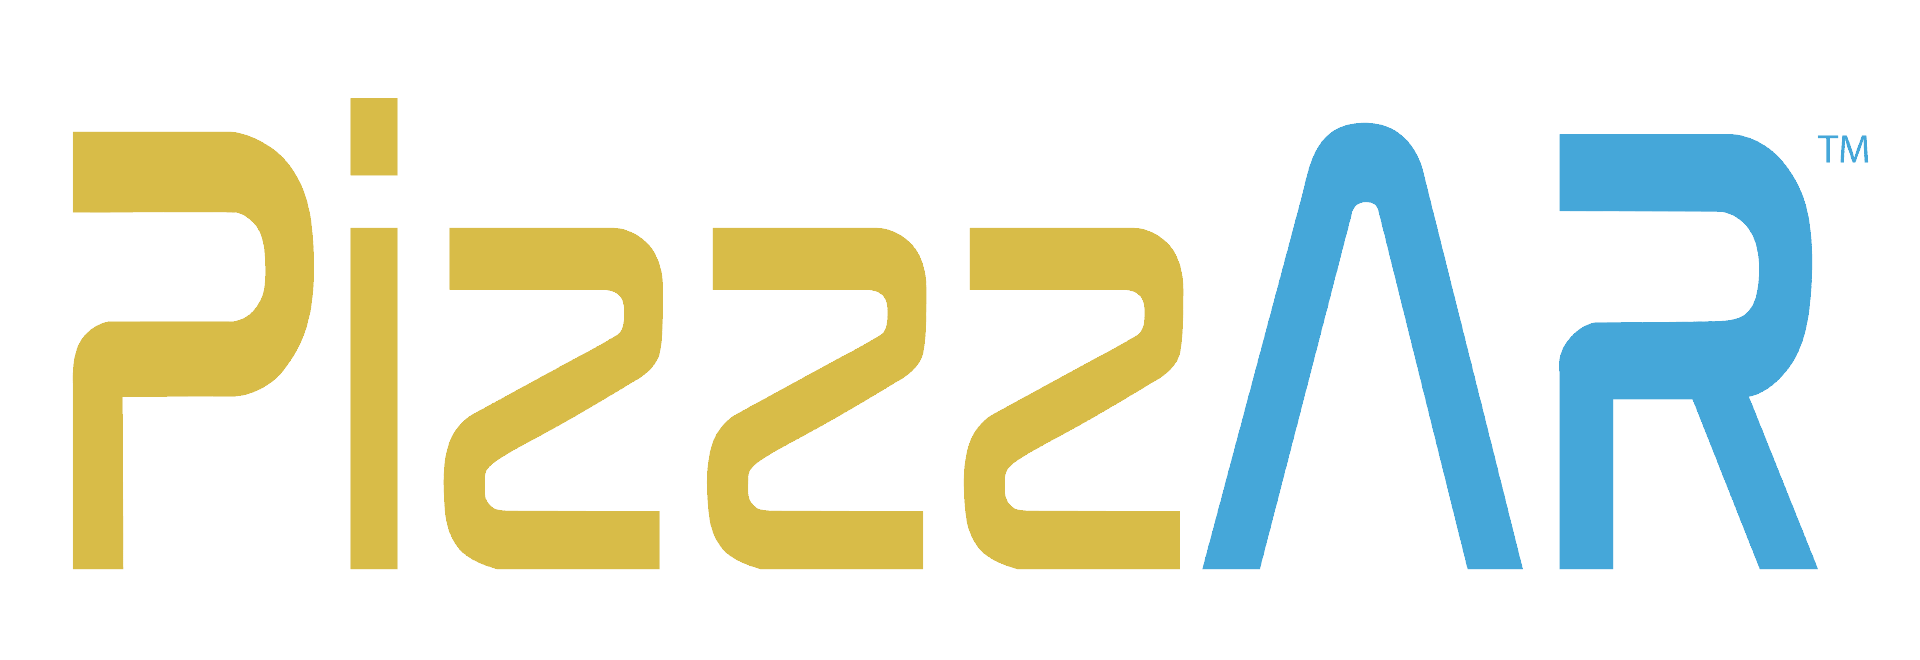 pizzzar logo dark